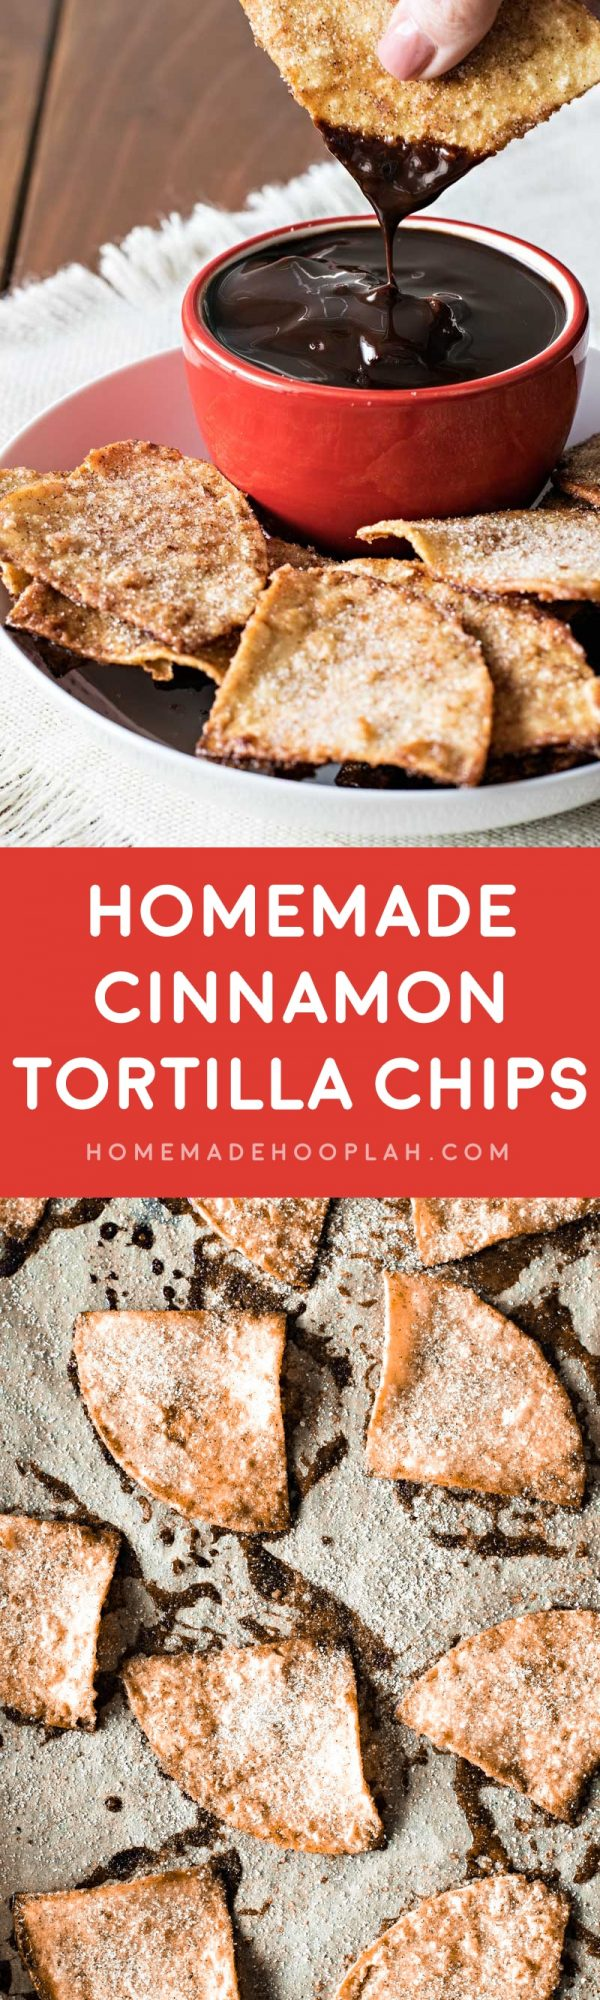 Homemade Cinnamon Tortilla Chips! These baked cinnamon tortilla chips ...